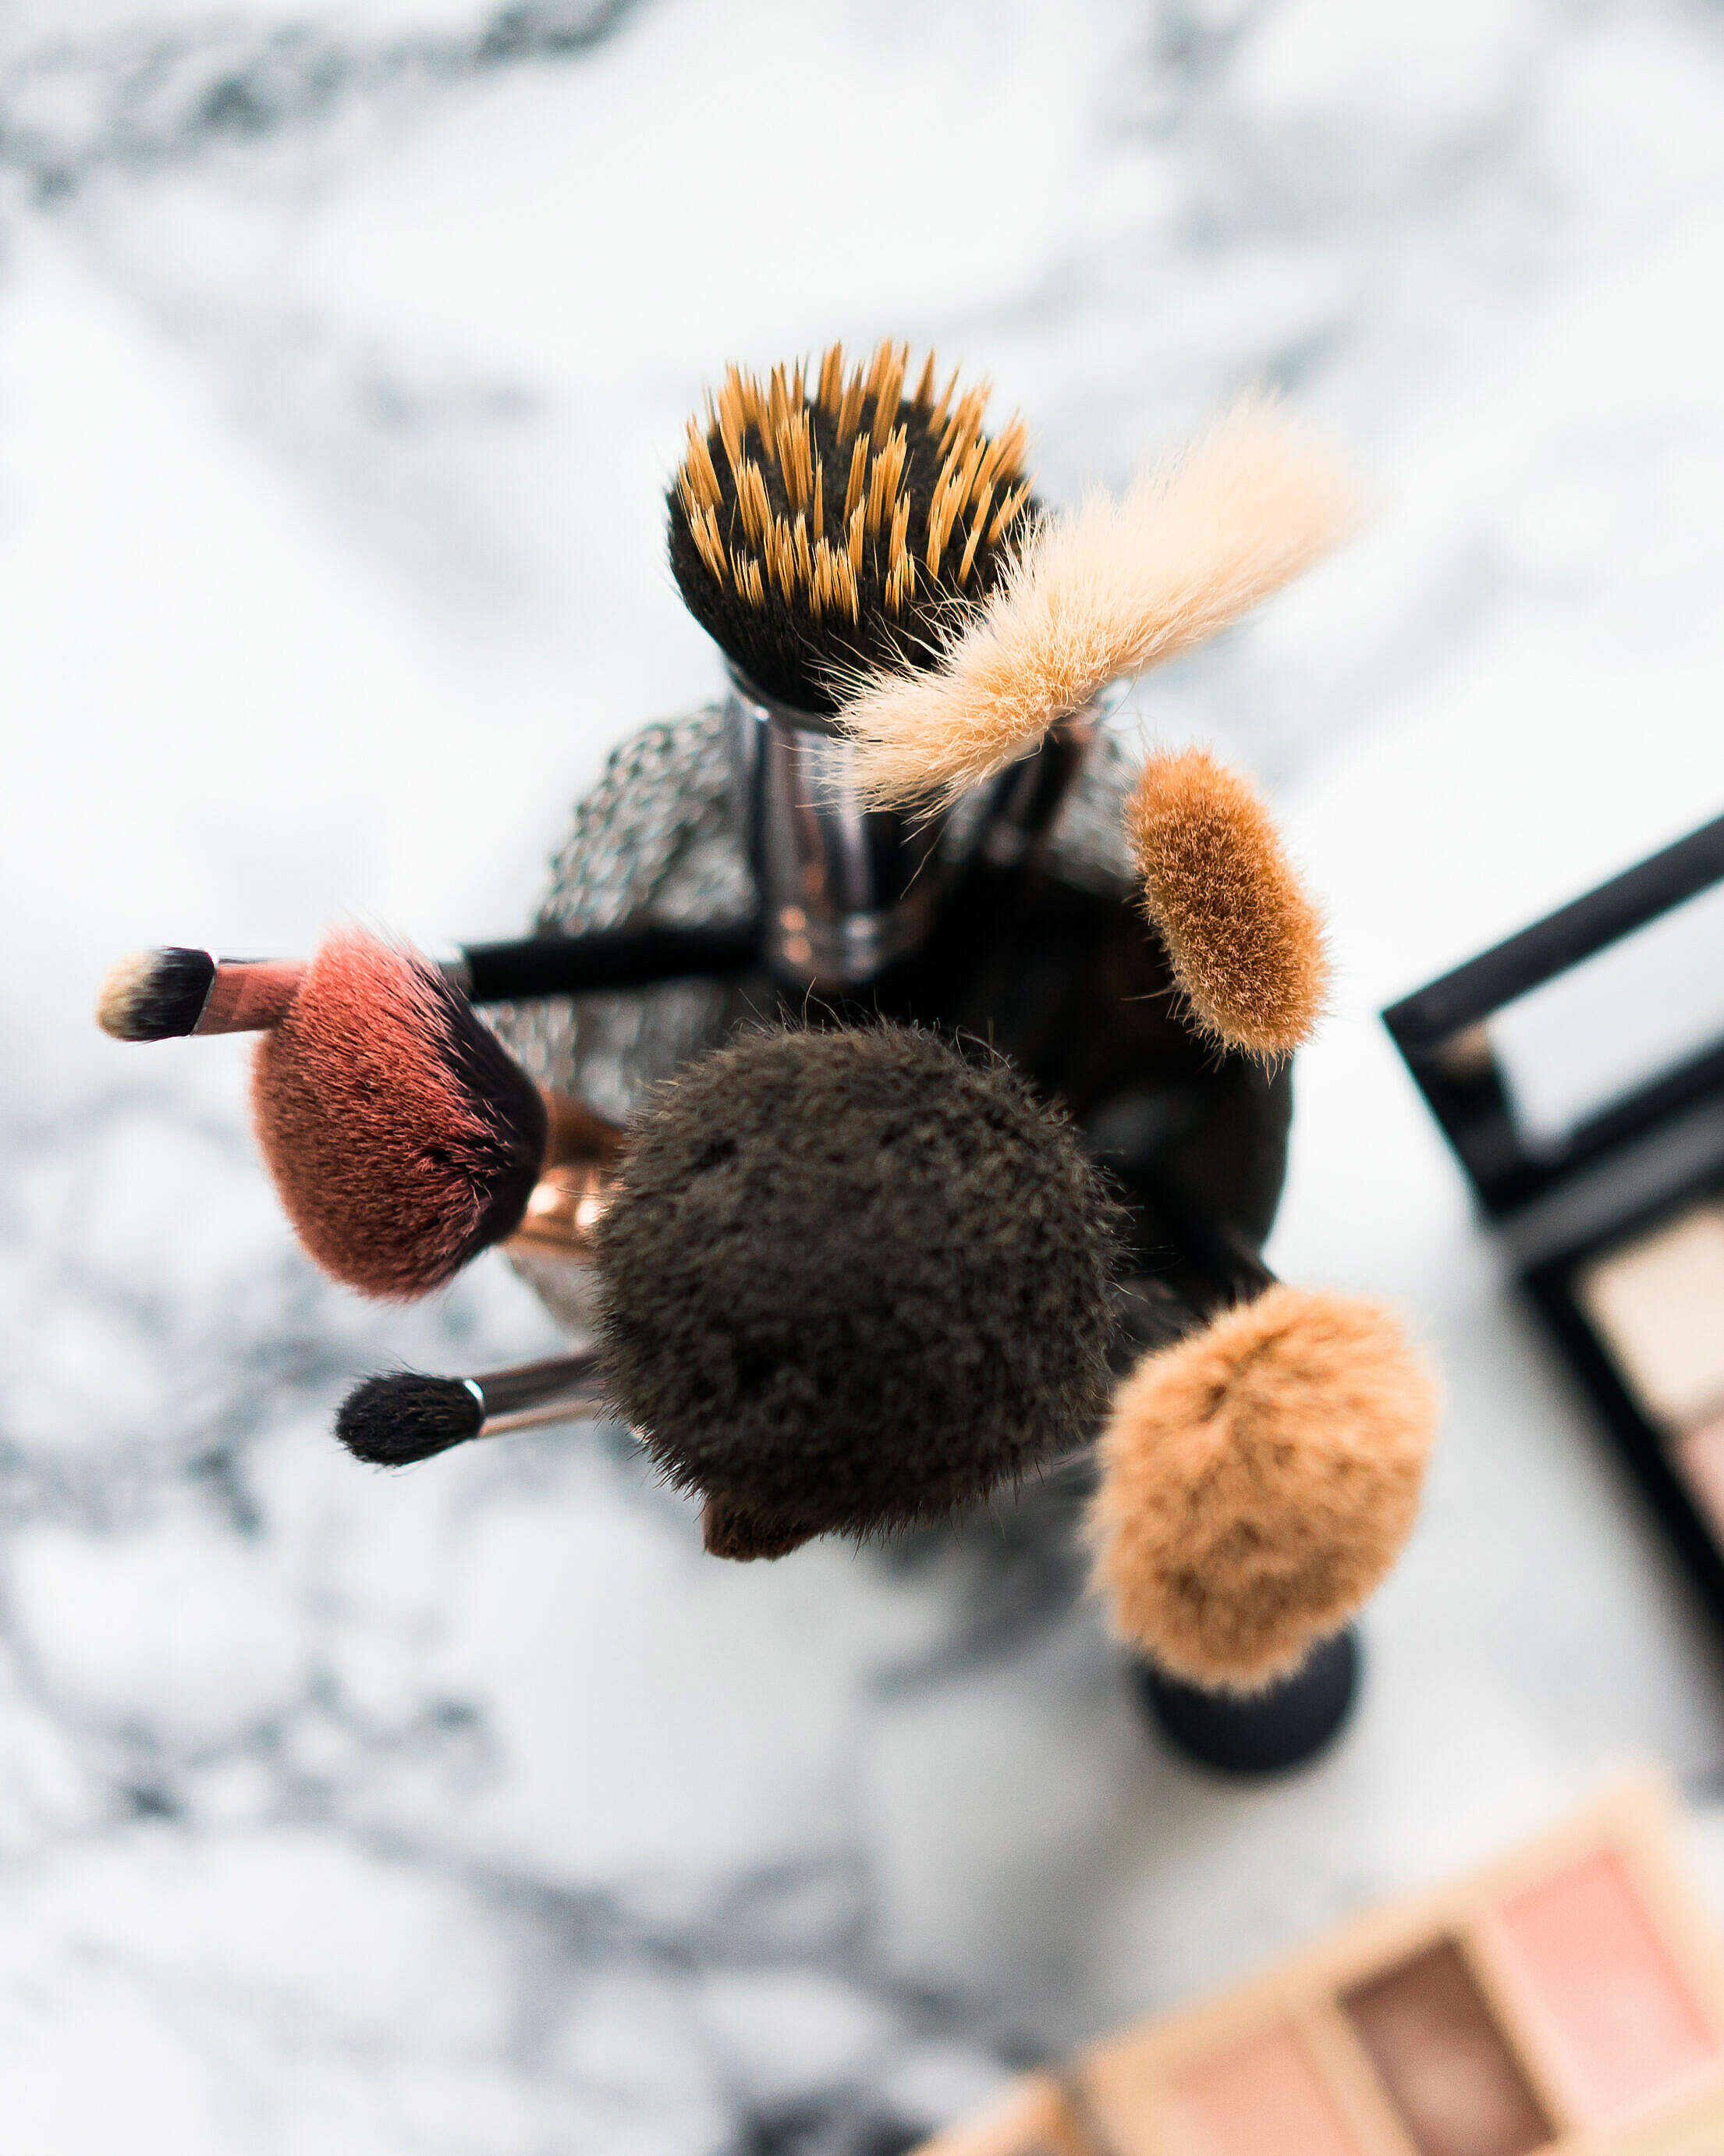 Makeup Brushes Vertical Free Stock Photo